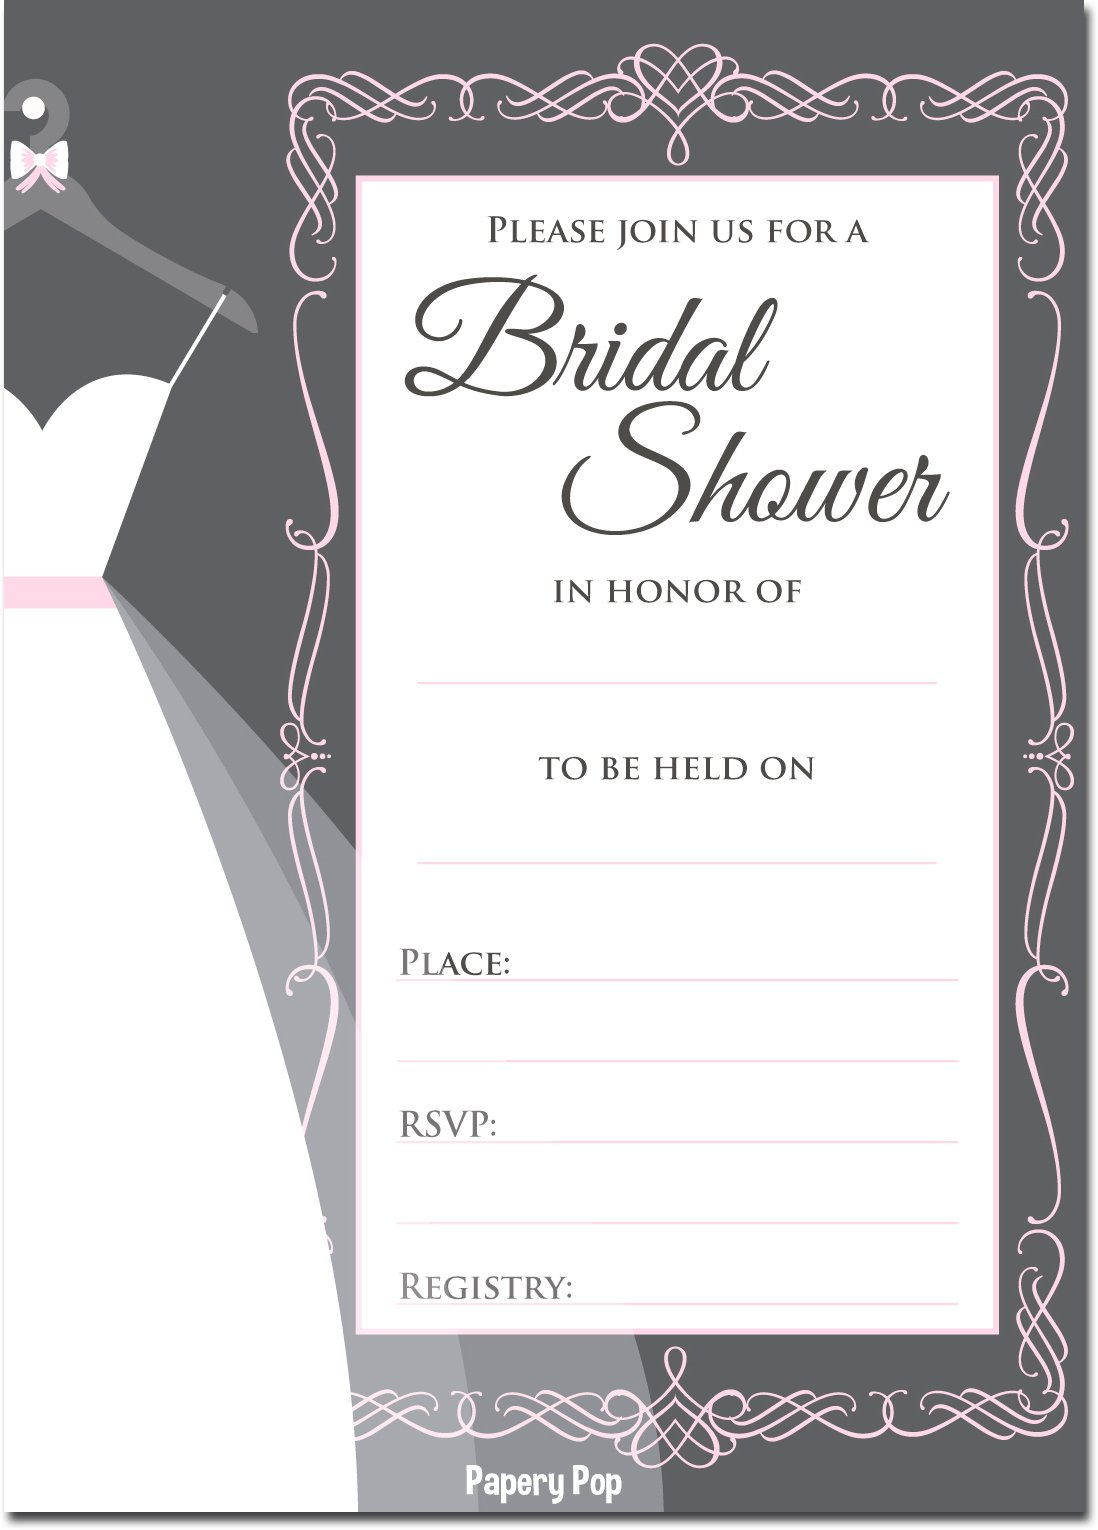 Amazon.com: 30 Bridal Shower Invitations with Envelopes - Wedding ...